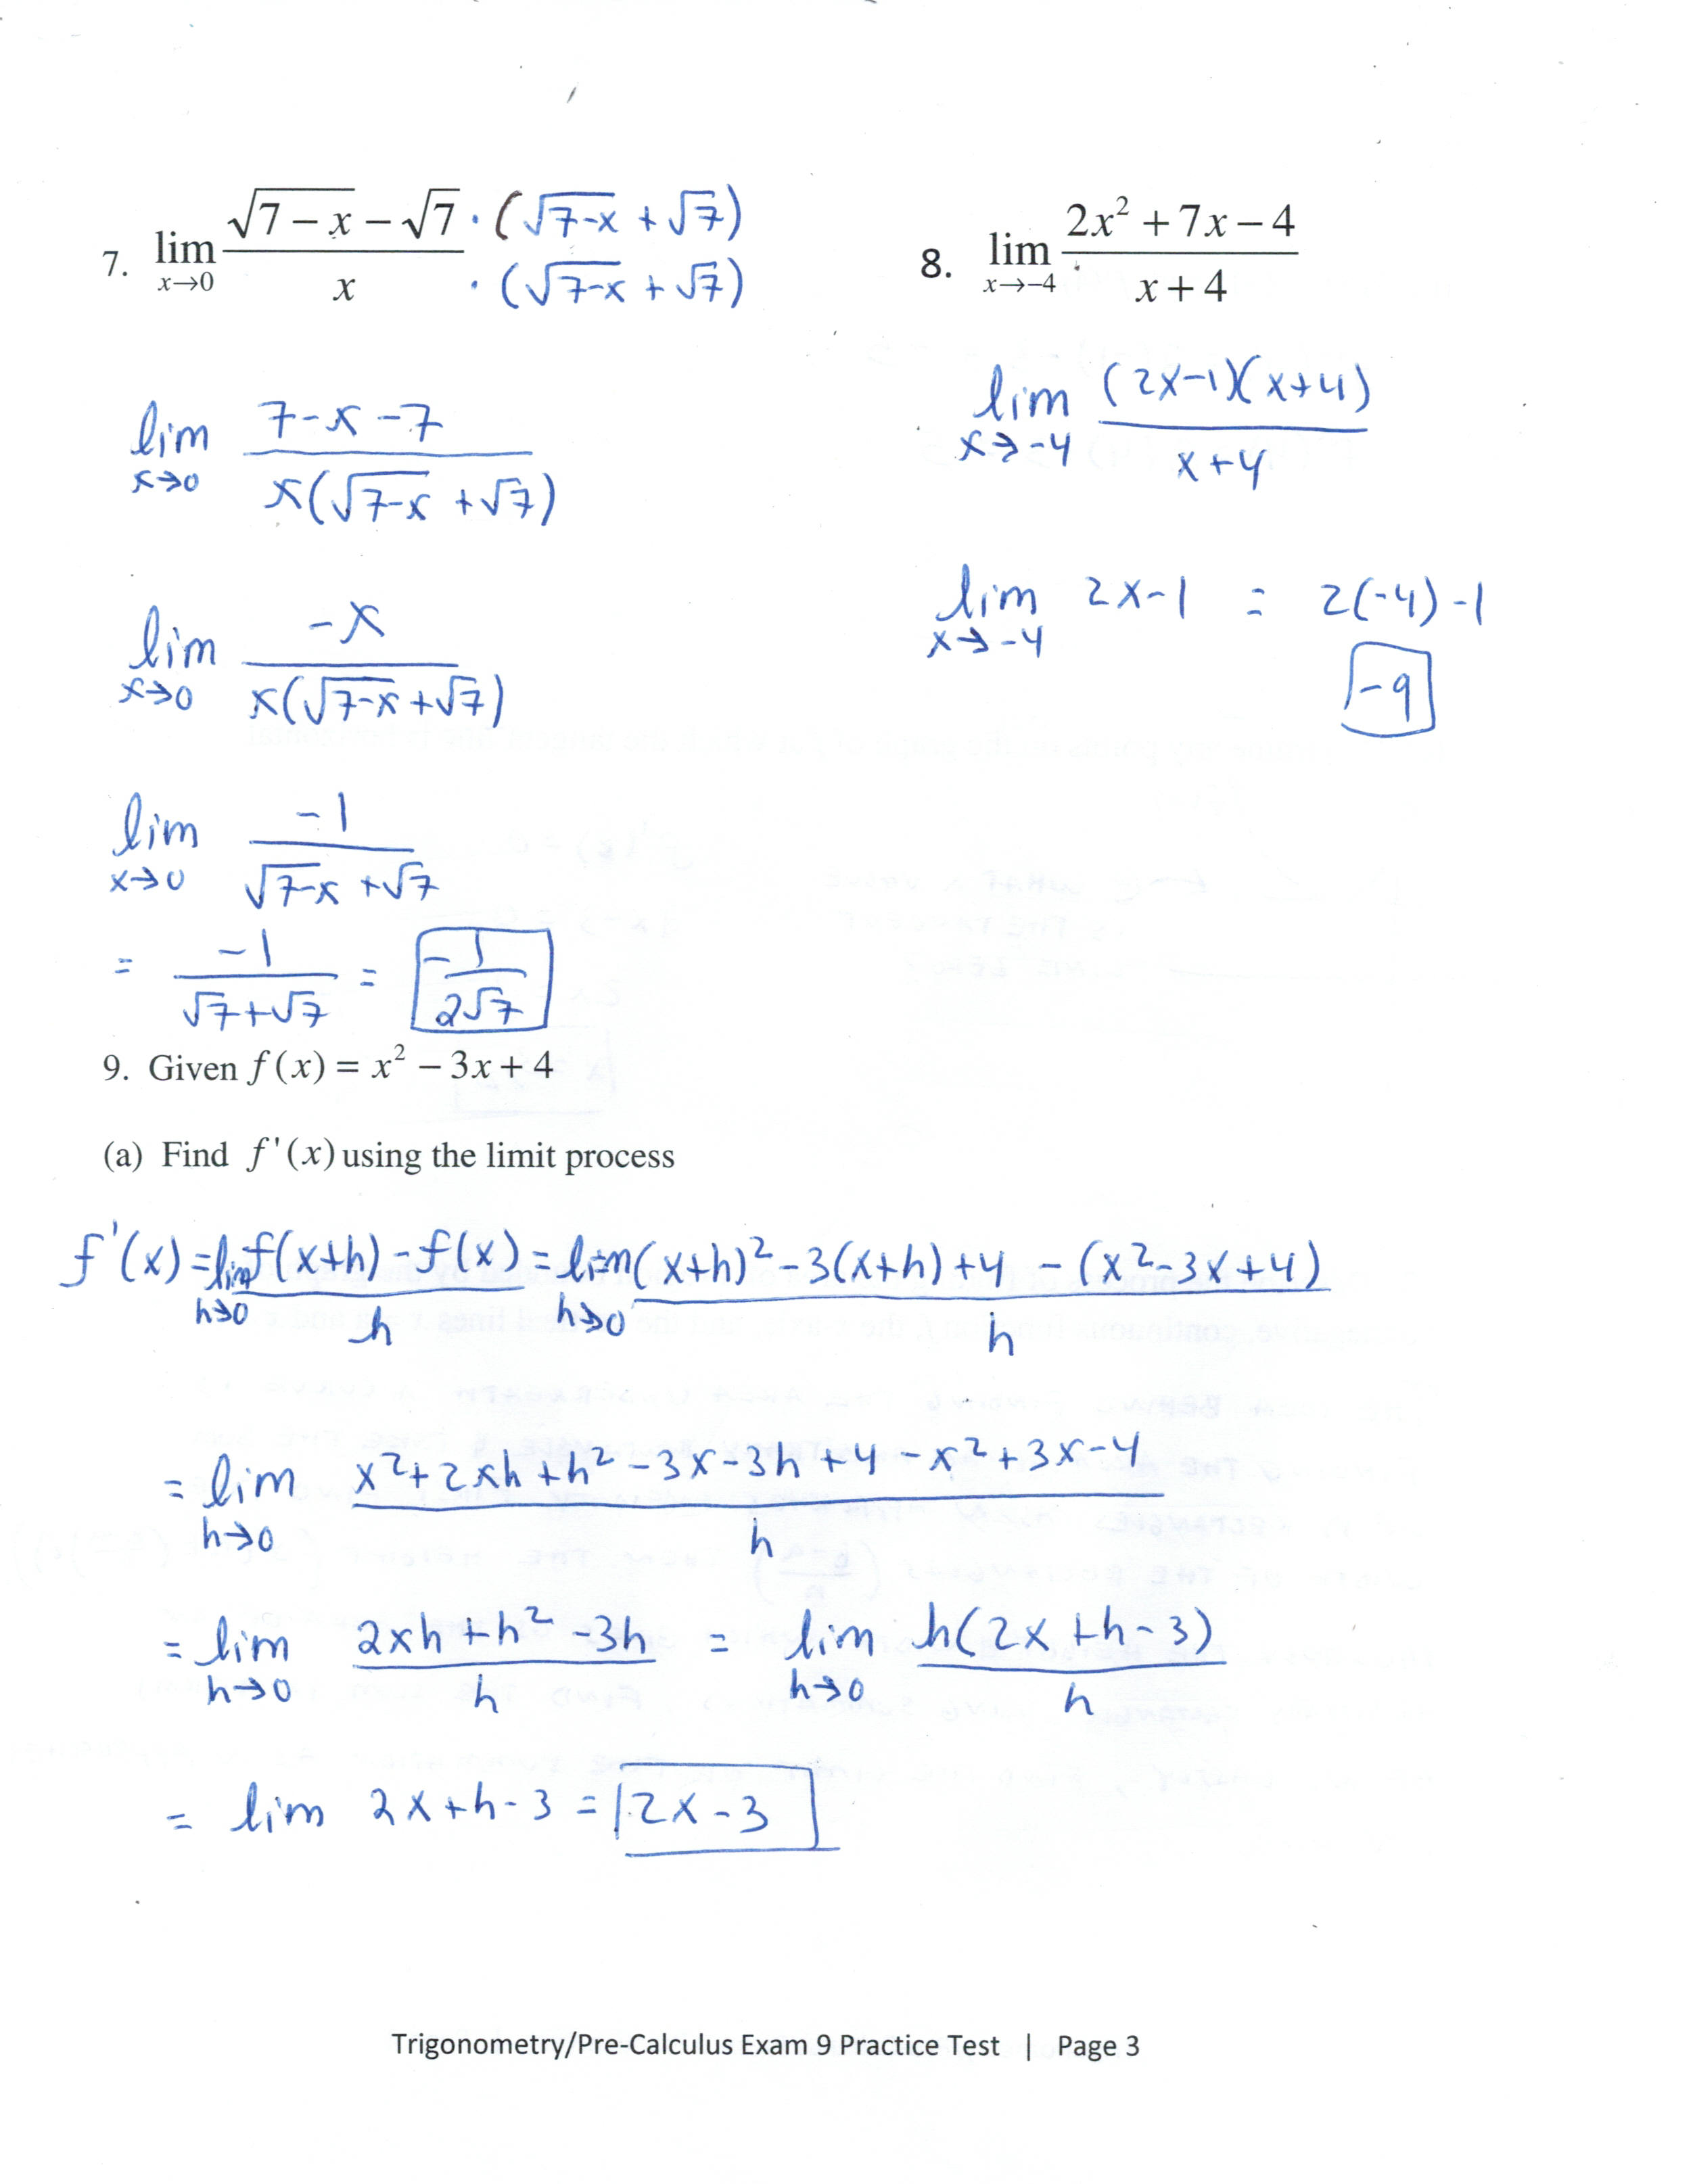 Chapter 11 Limits and an Introduction to Calculus - crunchy math